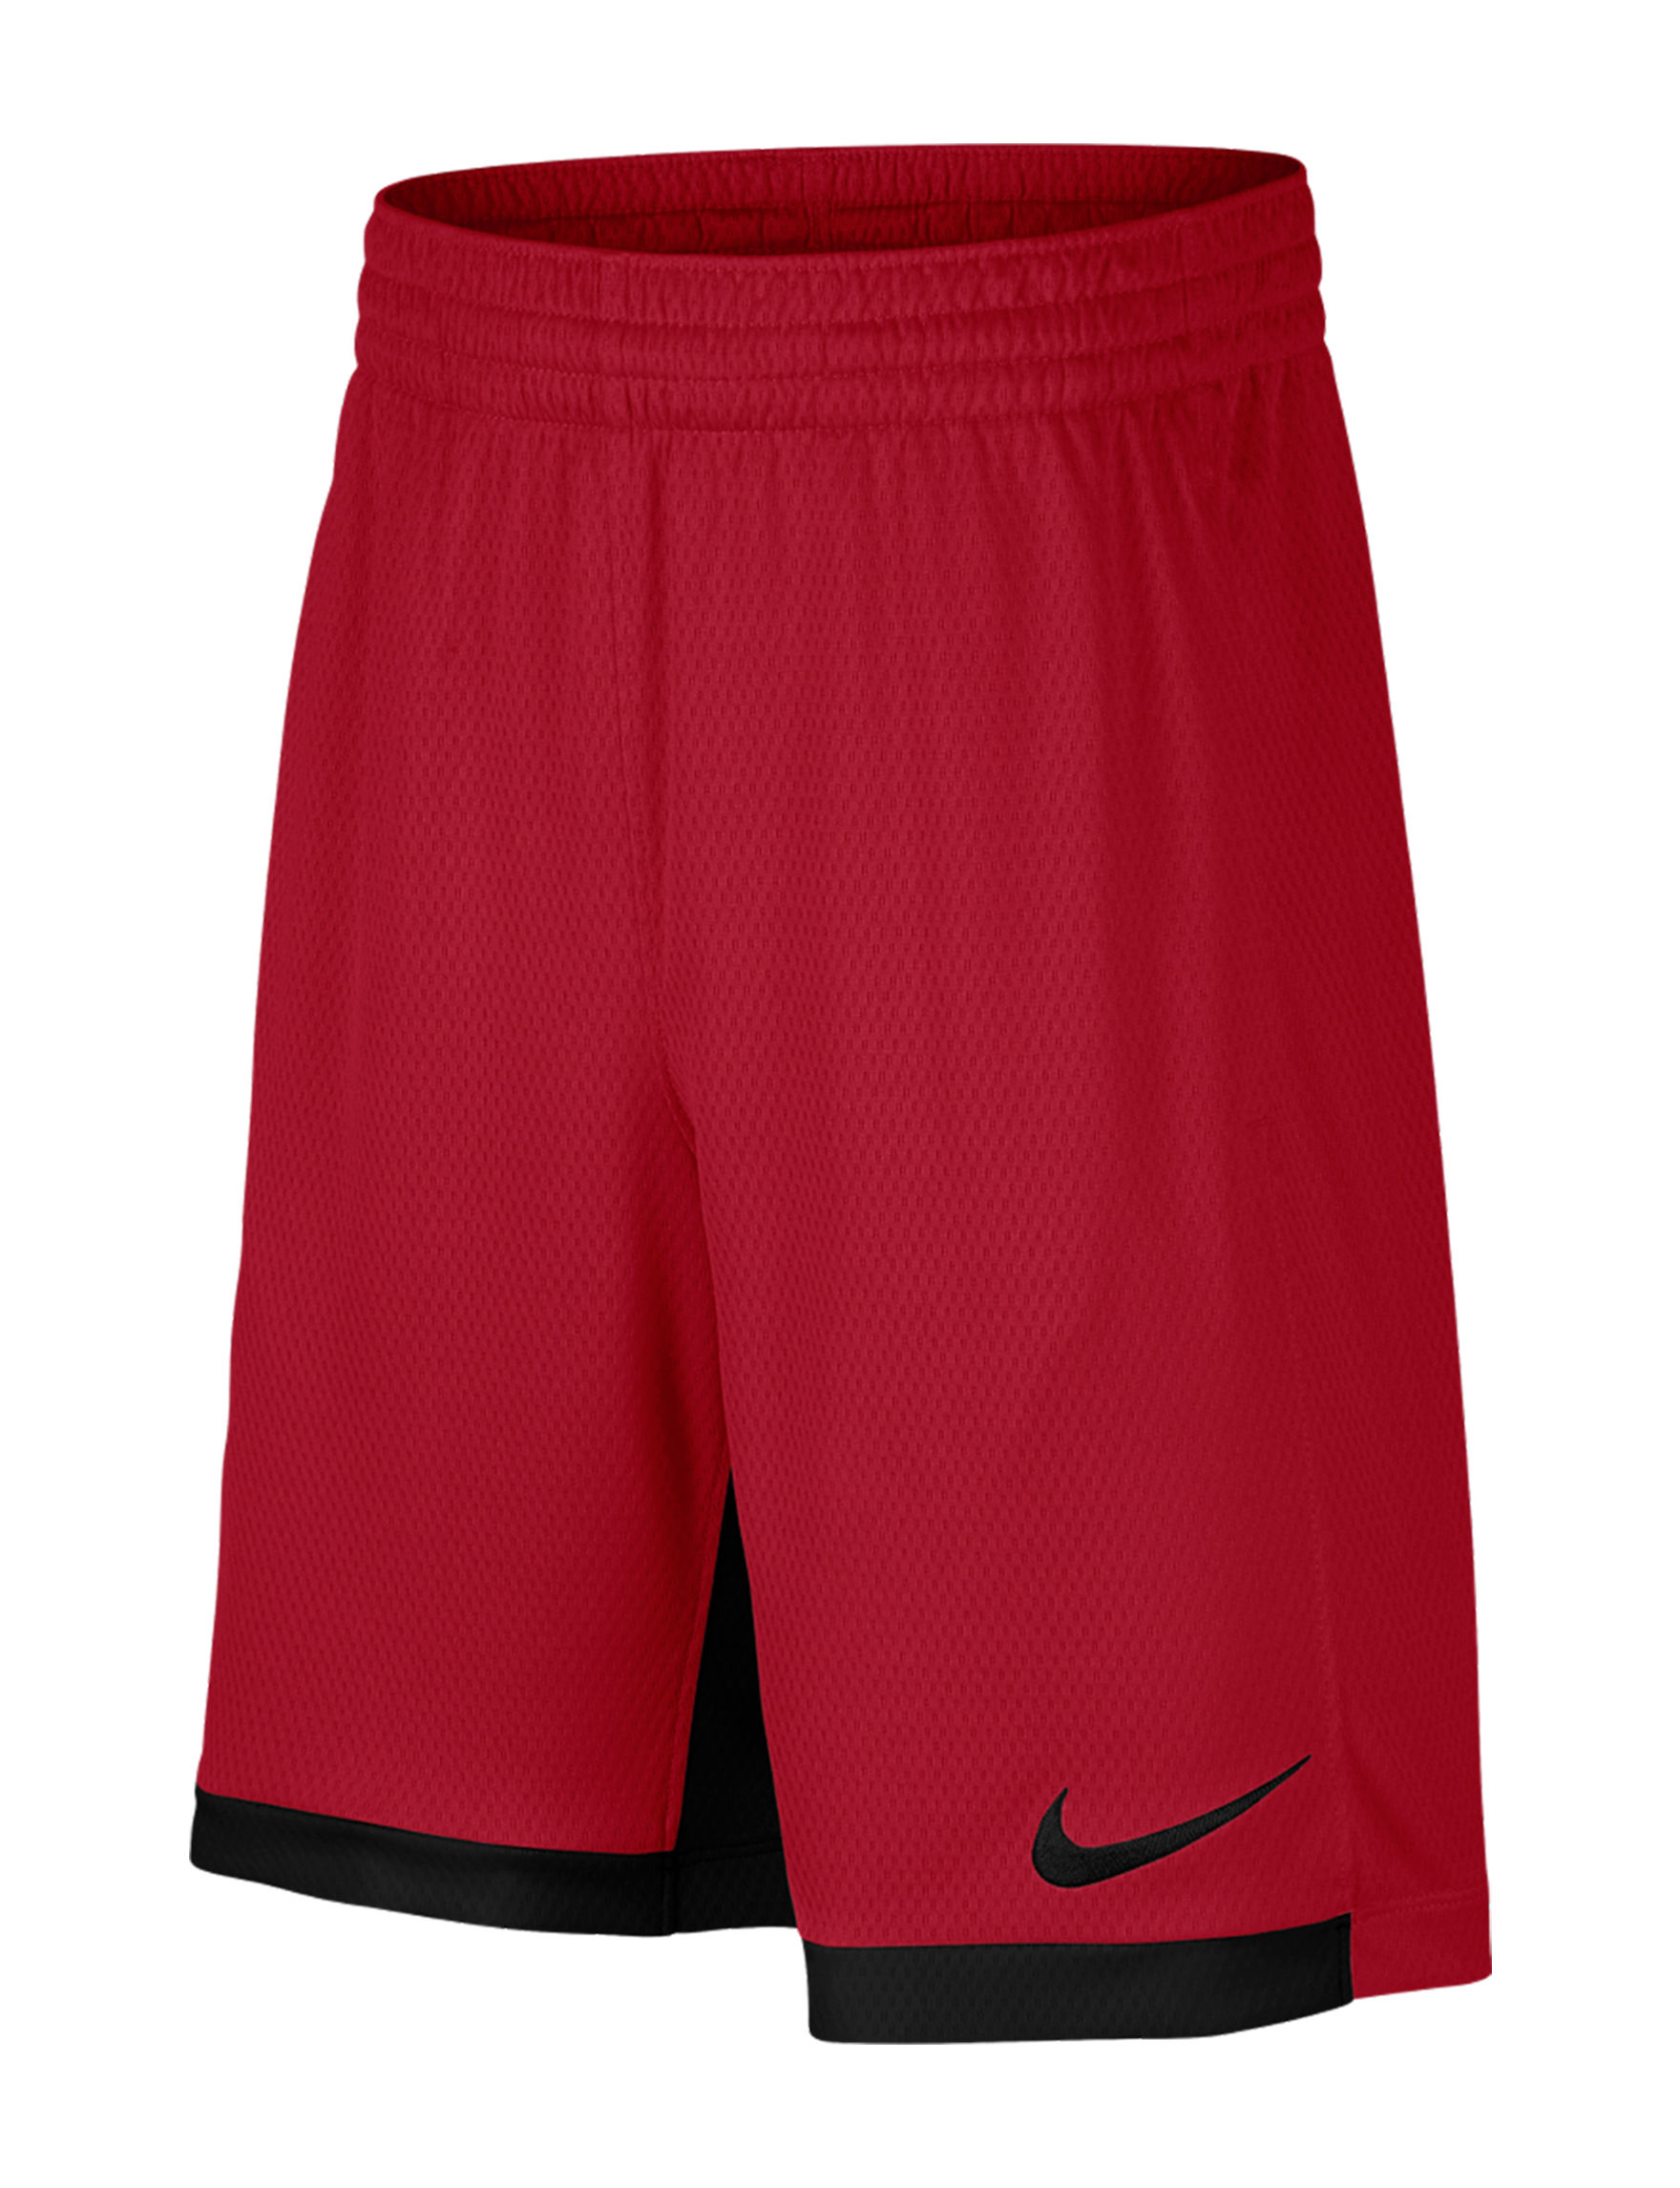 Nike Red Soft Shorts